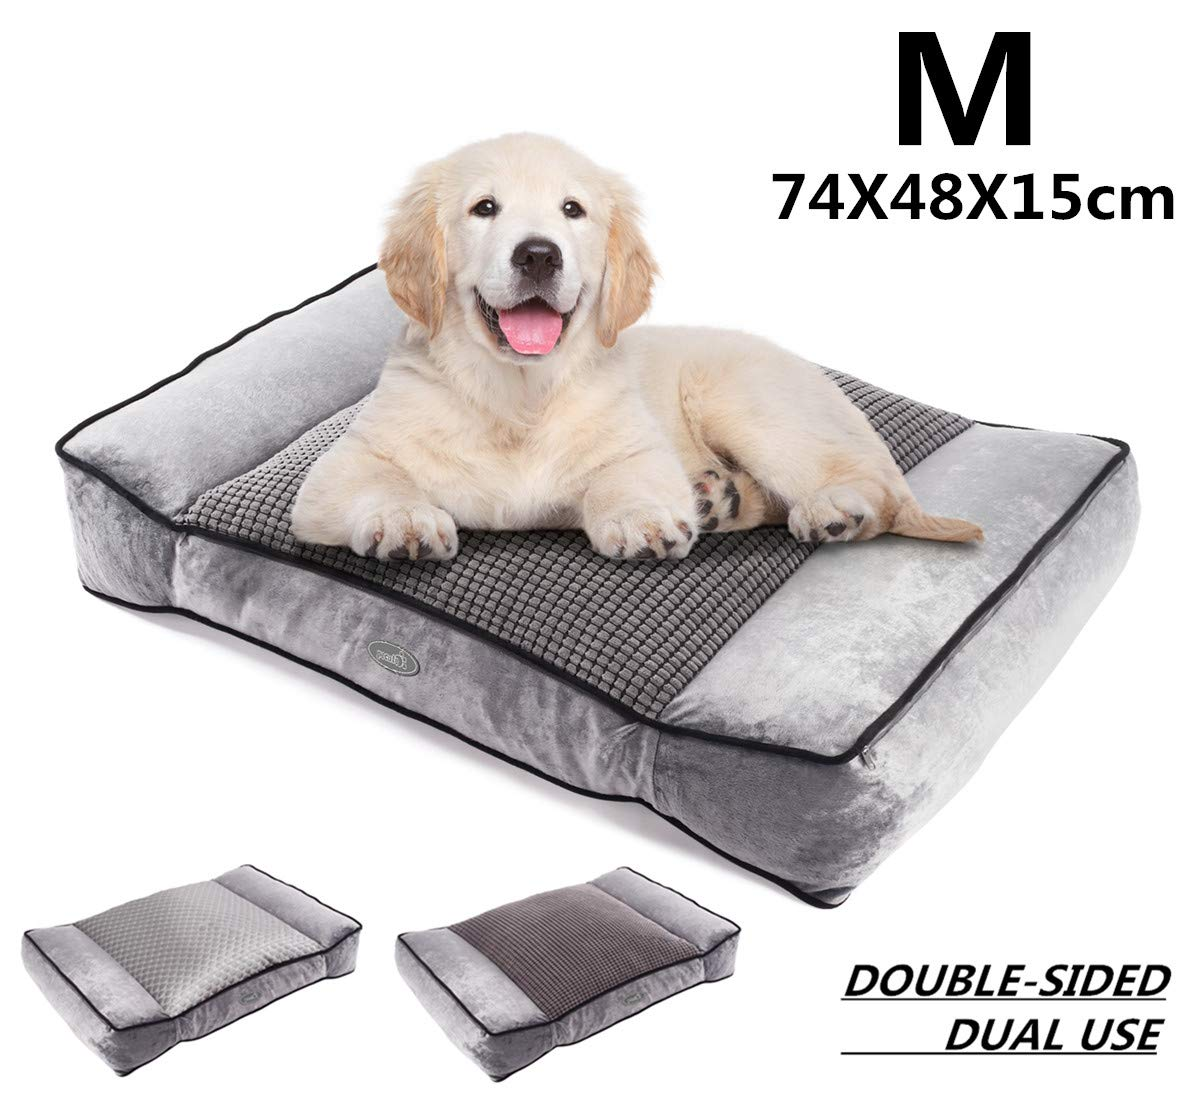 Pecute Medium Dog Bed(74X48cm), Shredded 15 cm Memory Foam Orthopaedic Pet Bed for Good Support,Warm Plush & Cool Silk Double Sided Design Four Seasons Available,Removable Cover Washable Easy to Clean